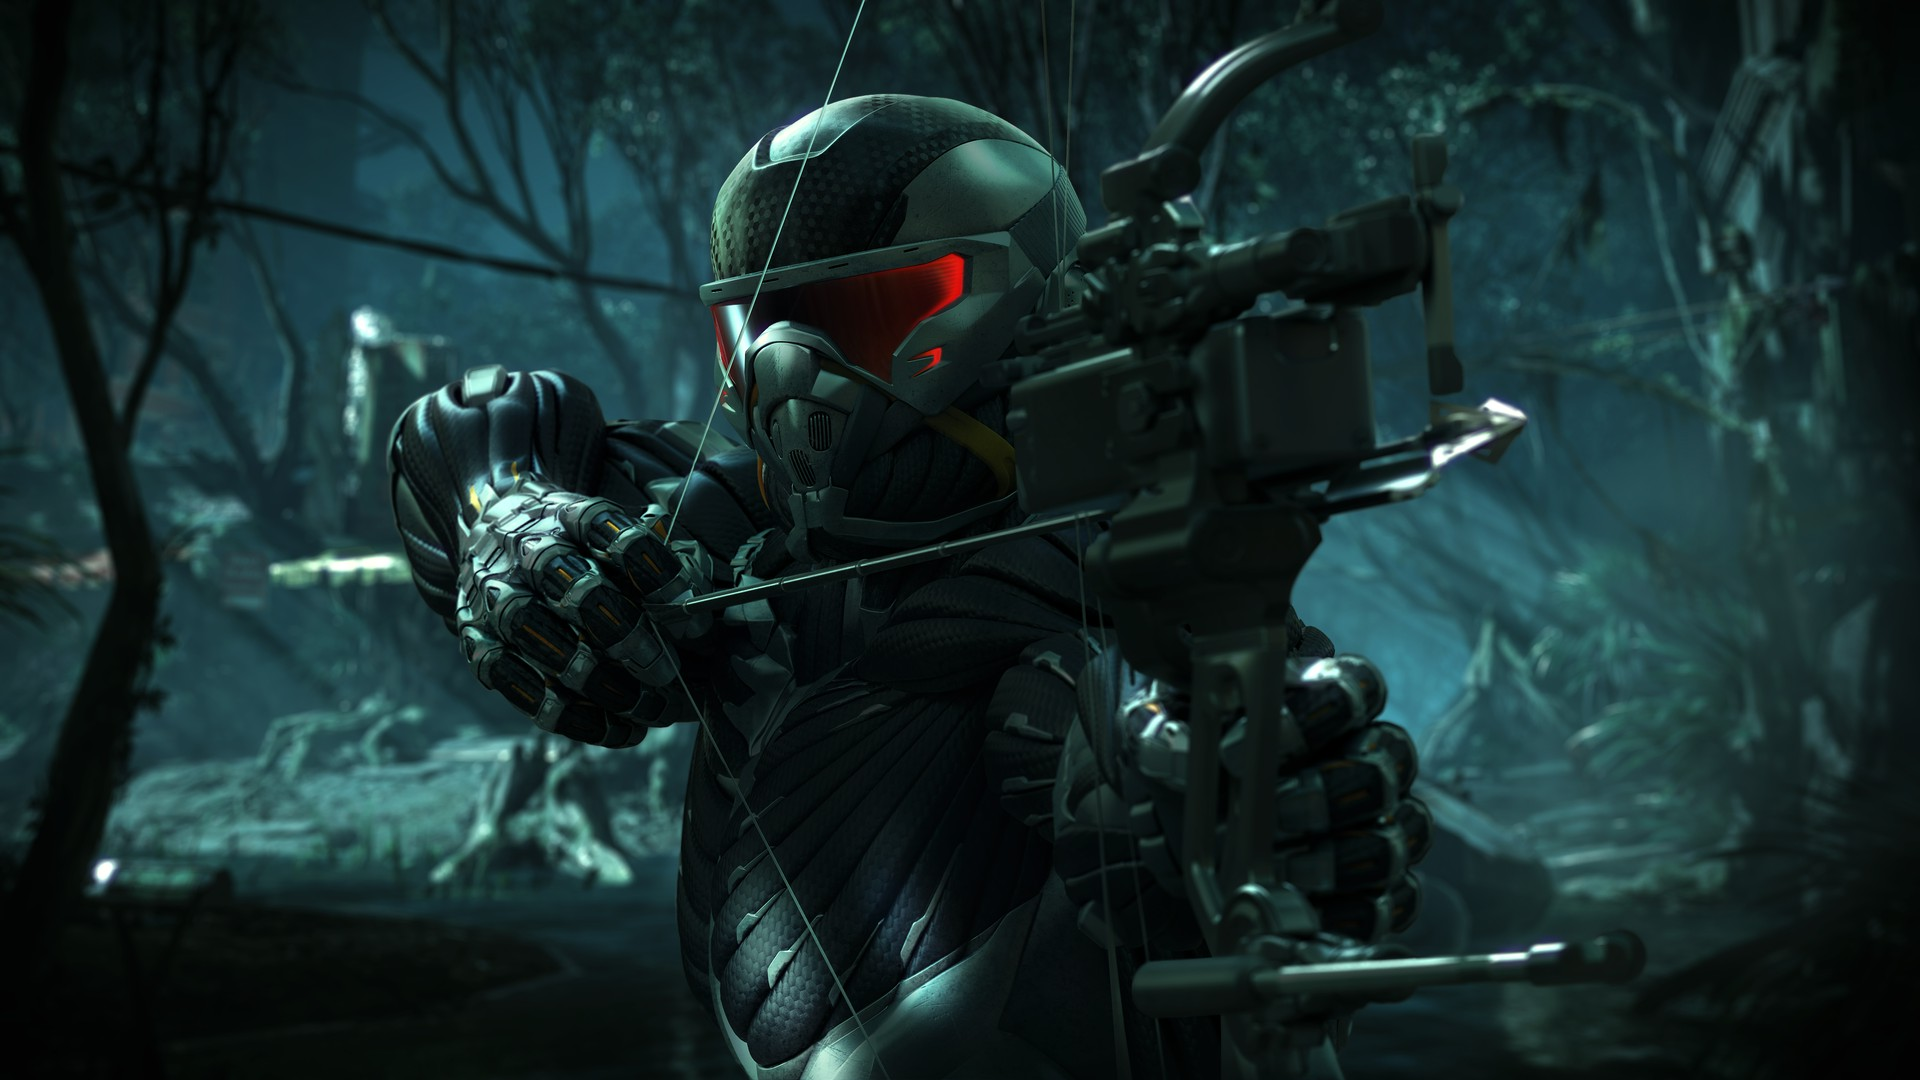 Crysis 3 HD Wallpapers Prophet and predator-bow